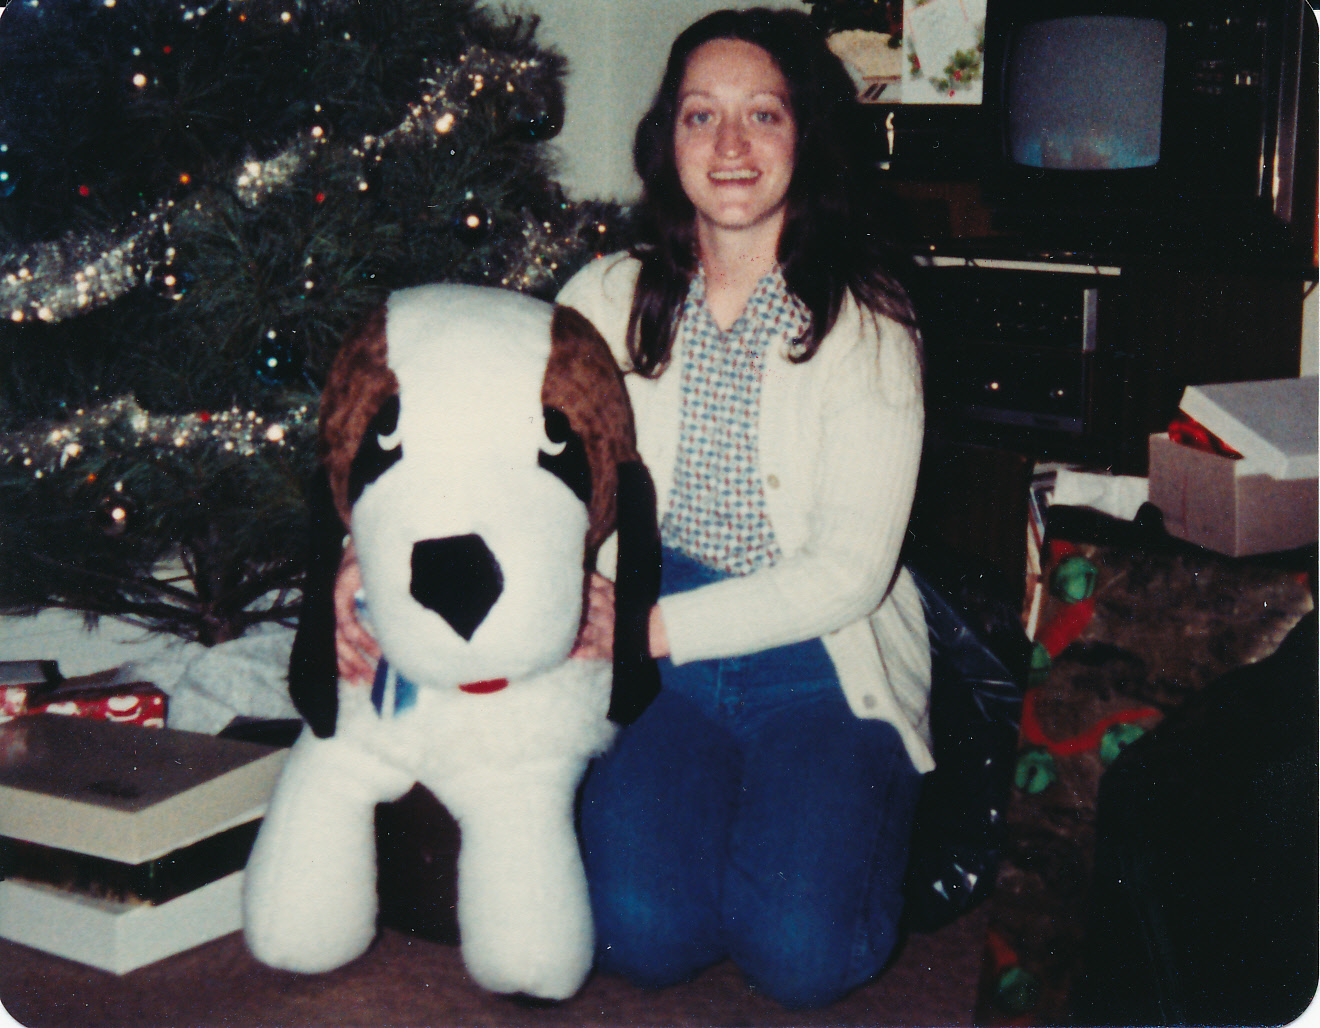 Aunt Betty at Christmas, long ago.